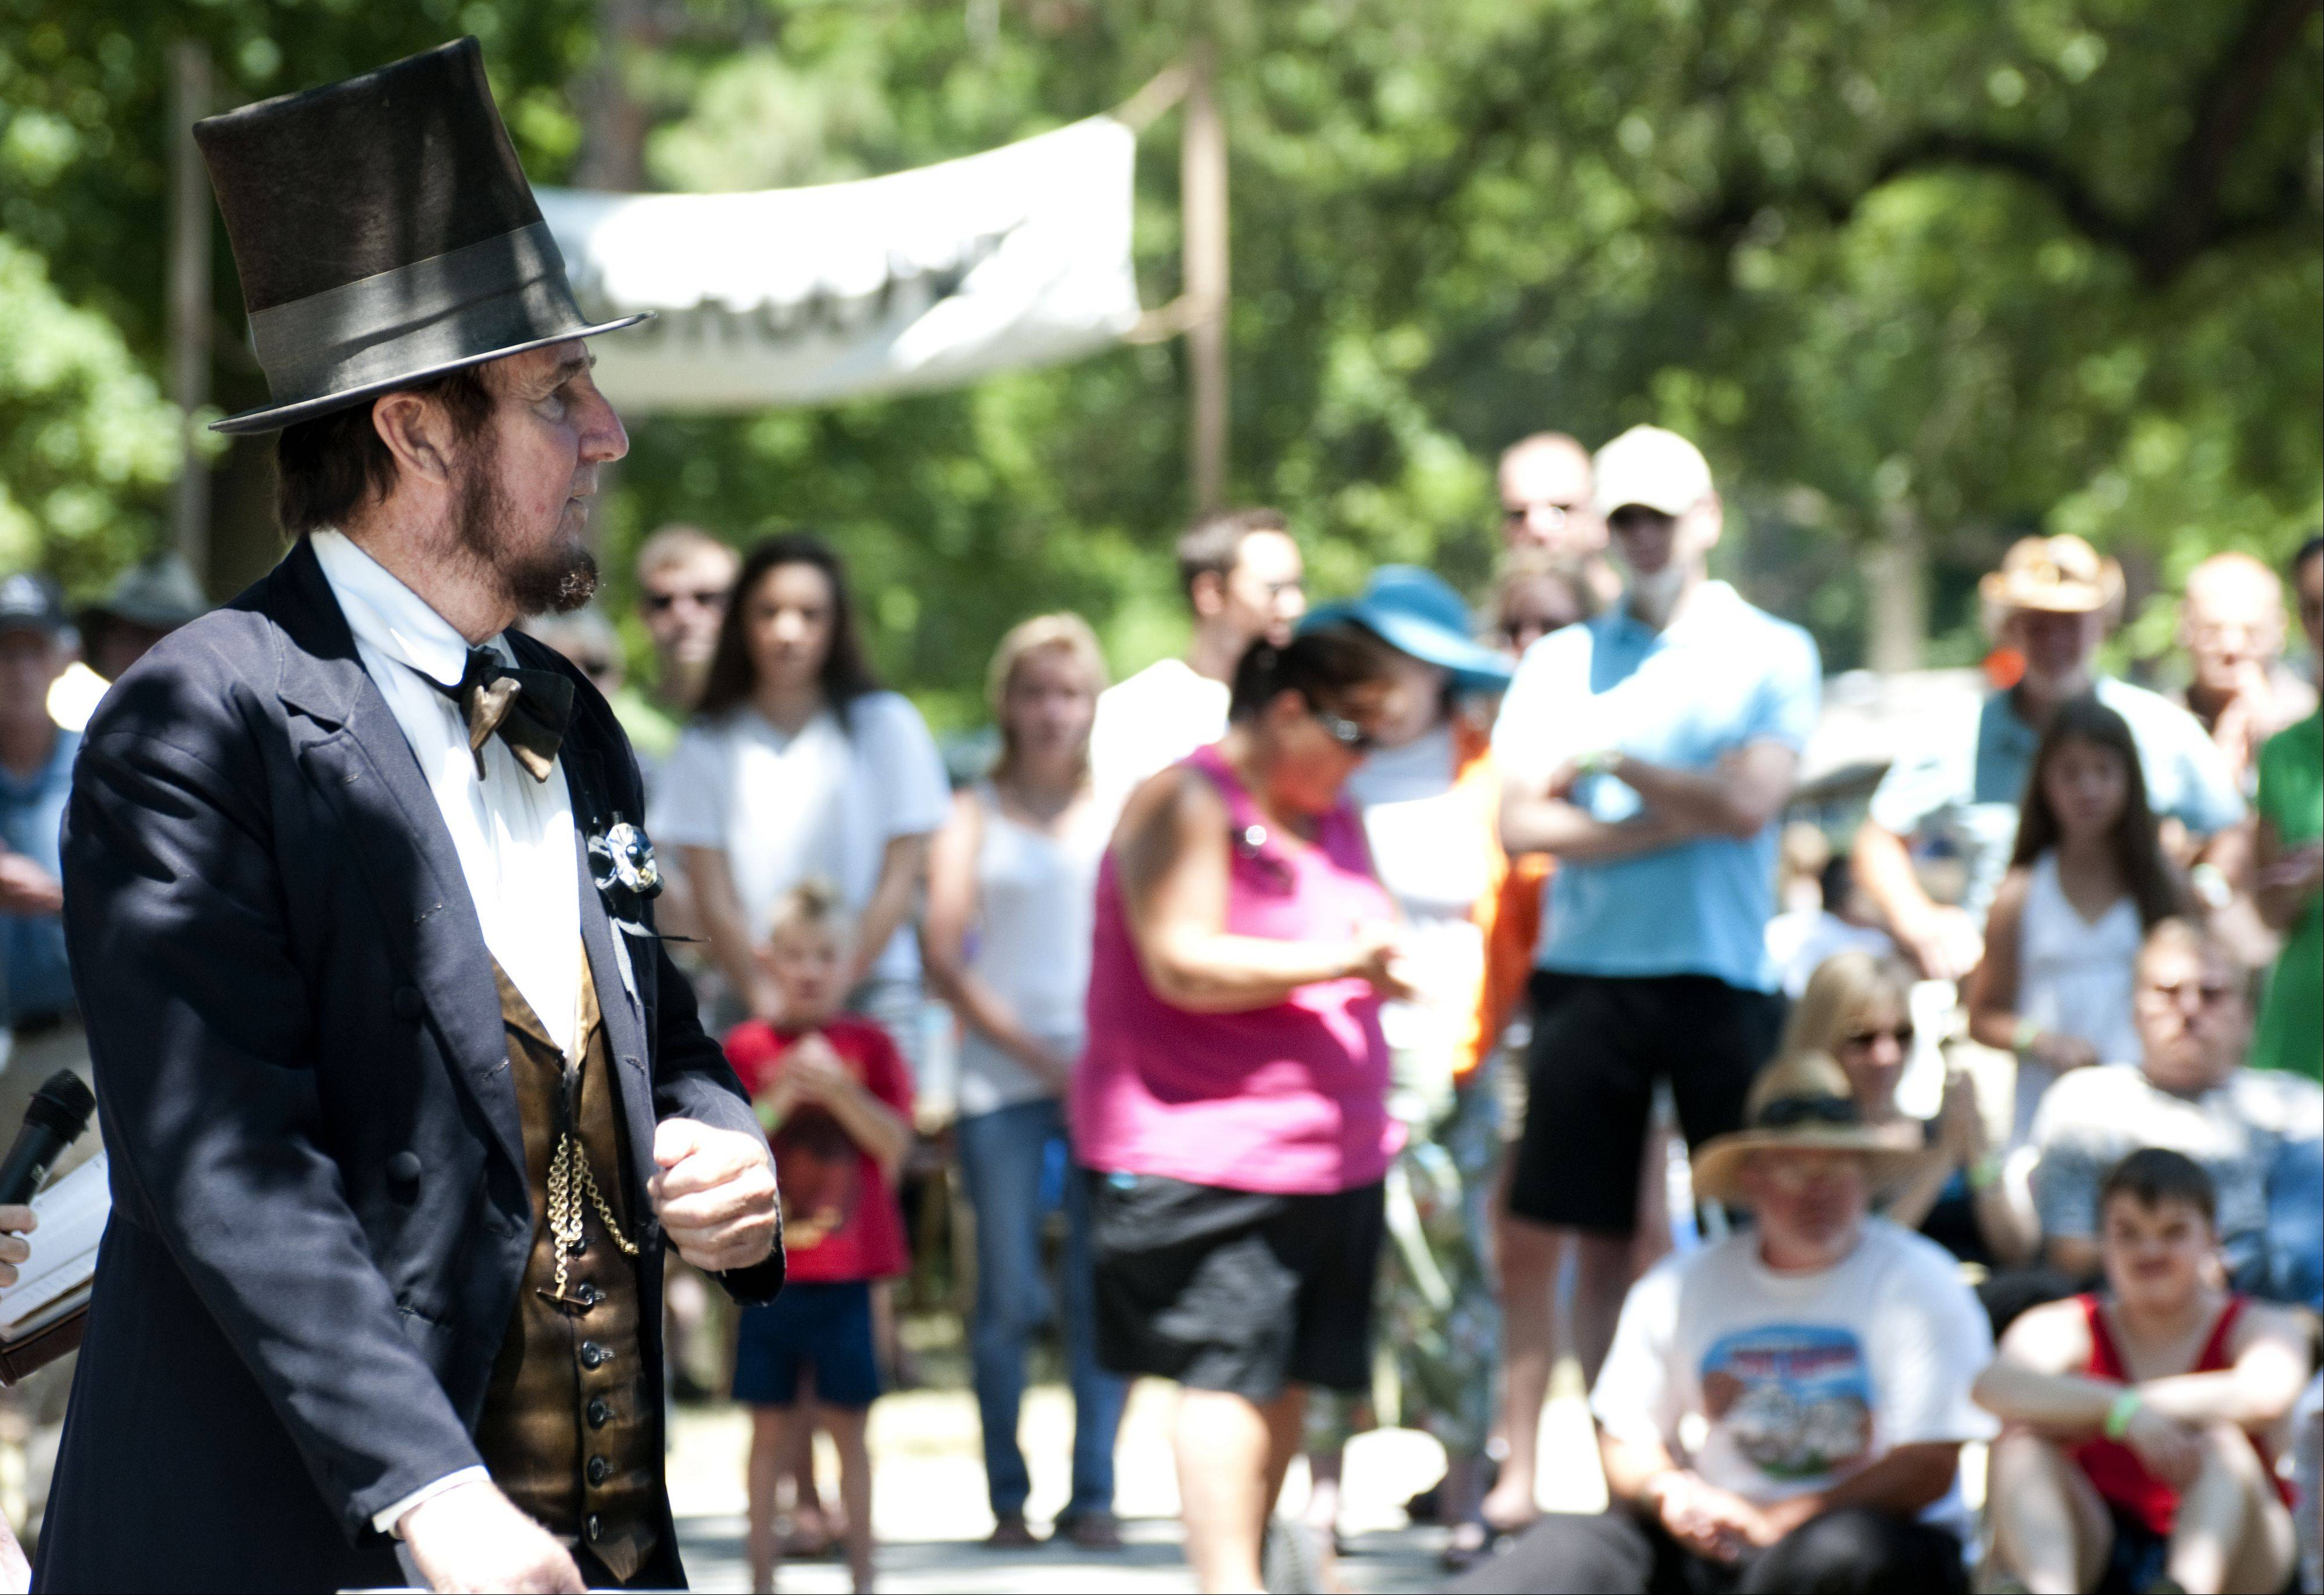 An Abraham Lincoln impersonator delivers a speech to the crowd during Civil War Days Sunday in the Lakewood Forest Preserve near Wauconda. Lincoln, as well Harriet Tubman, Sojourner Truth, Ulysses S. Grant and Robert E. Lee made appearances and interacted with crowd members.